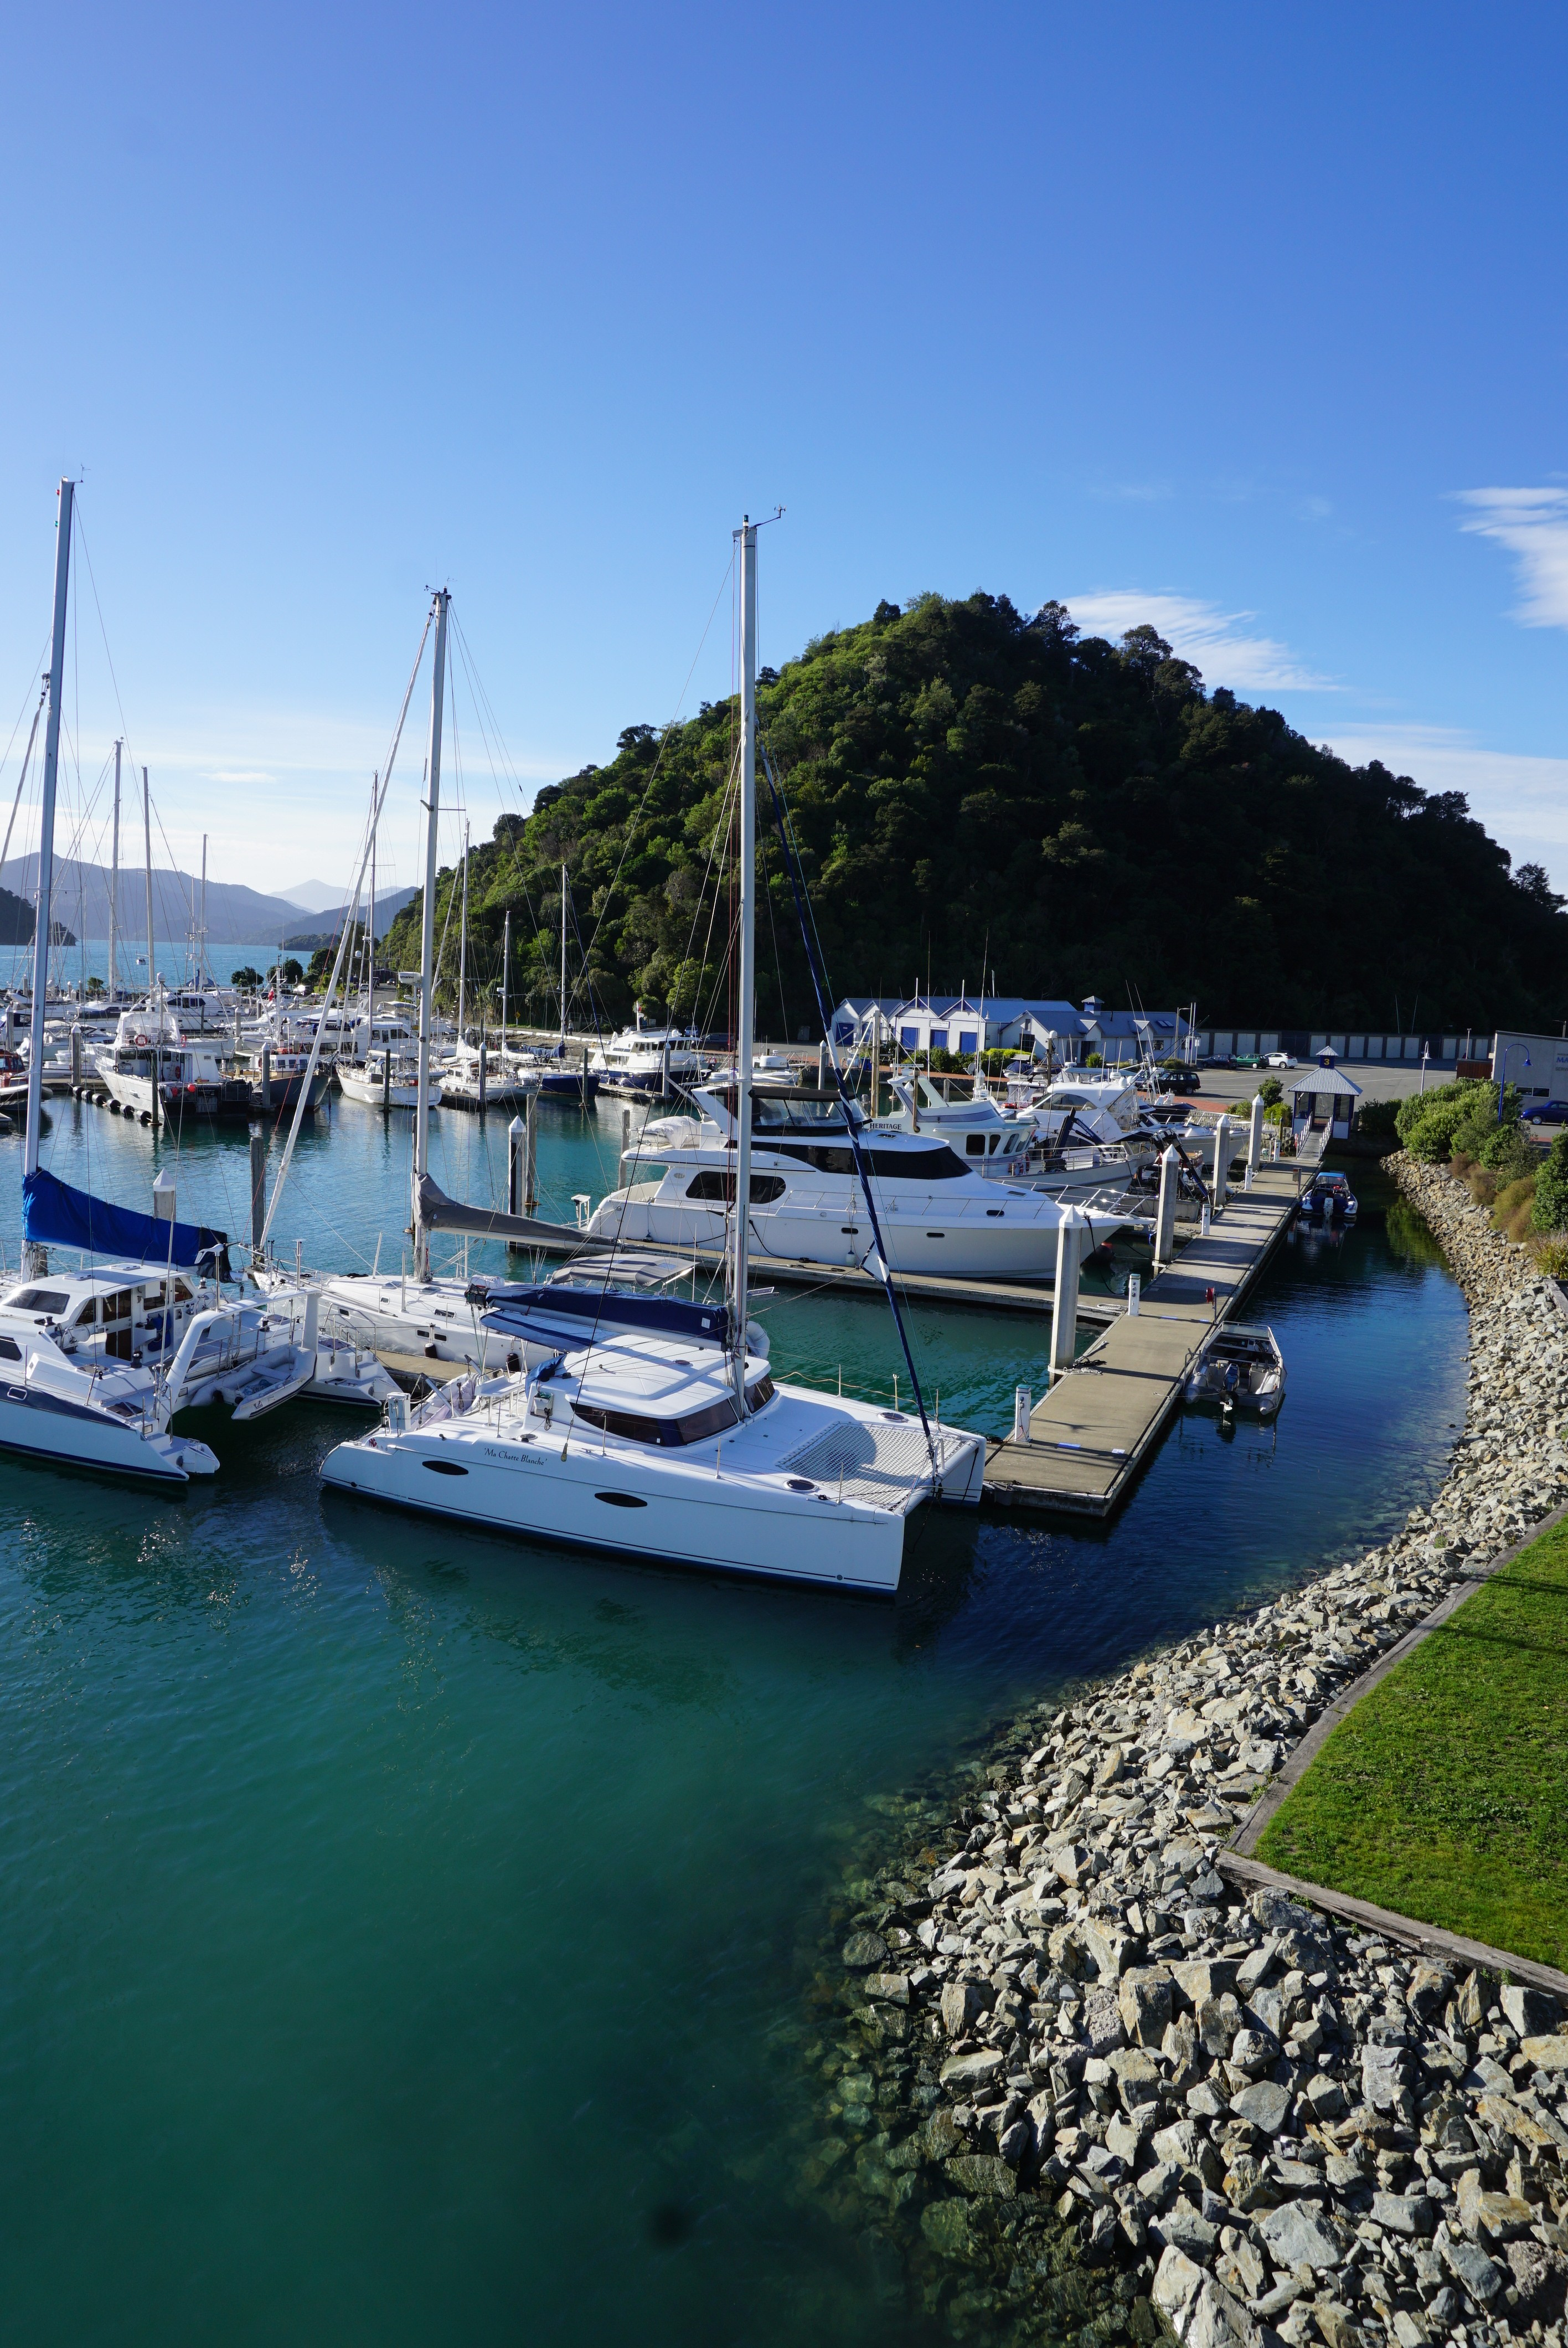 the harbor at Picton